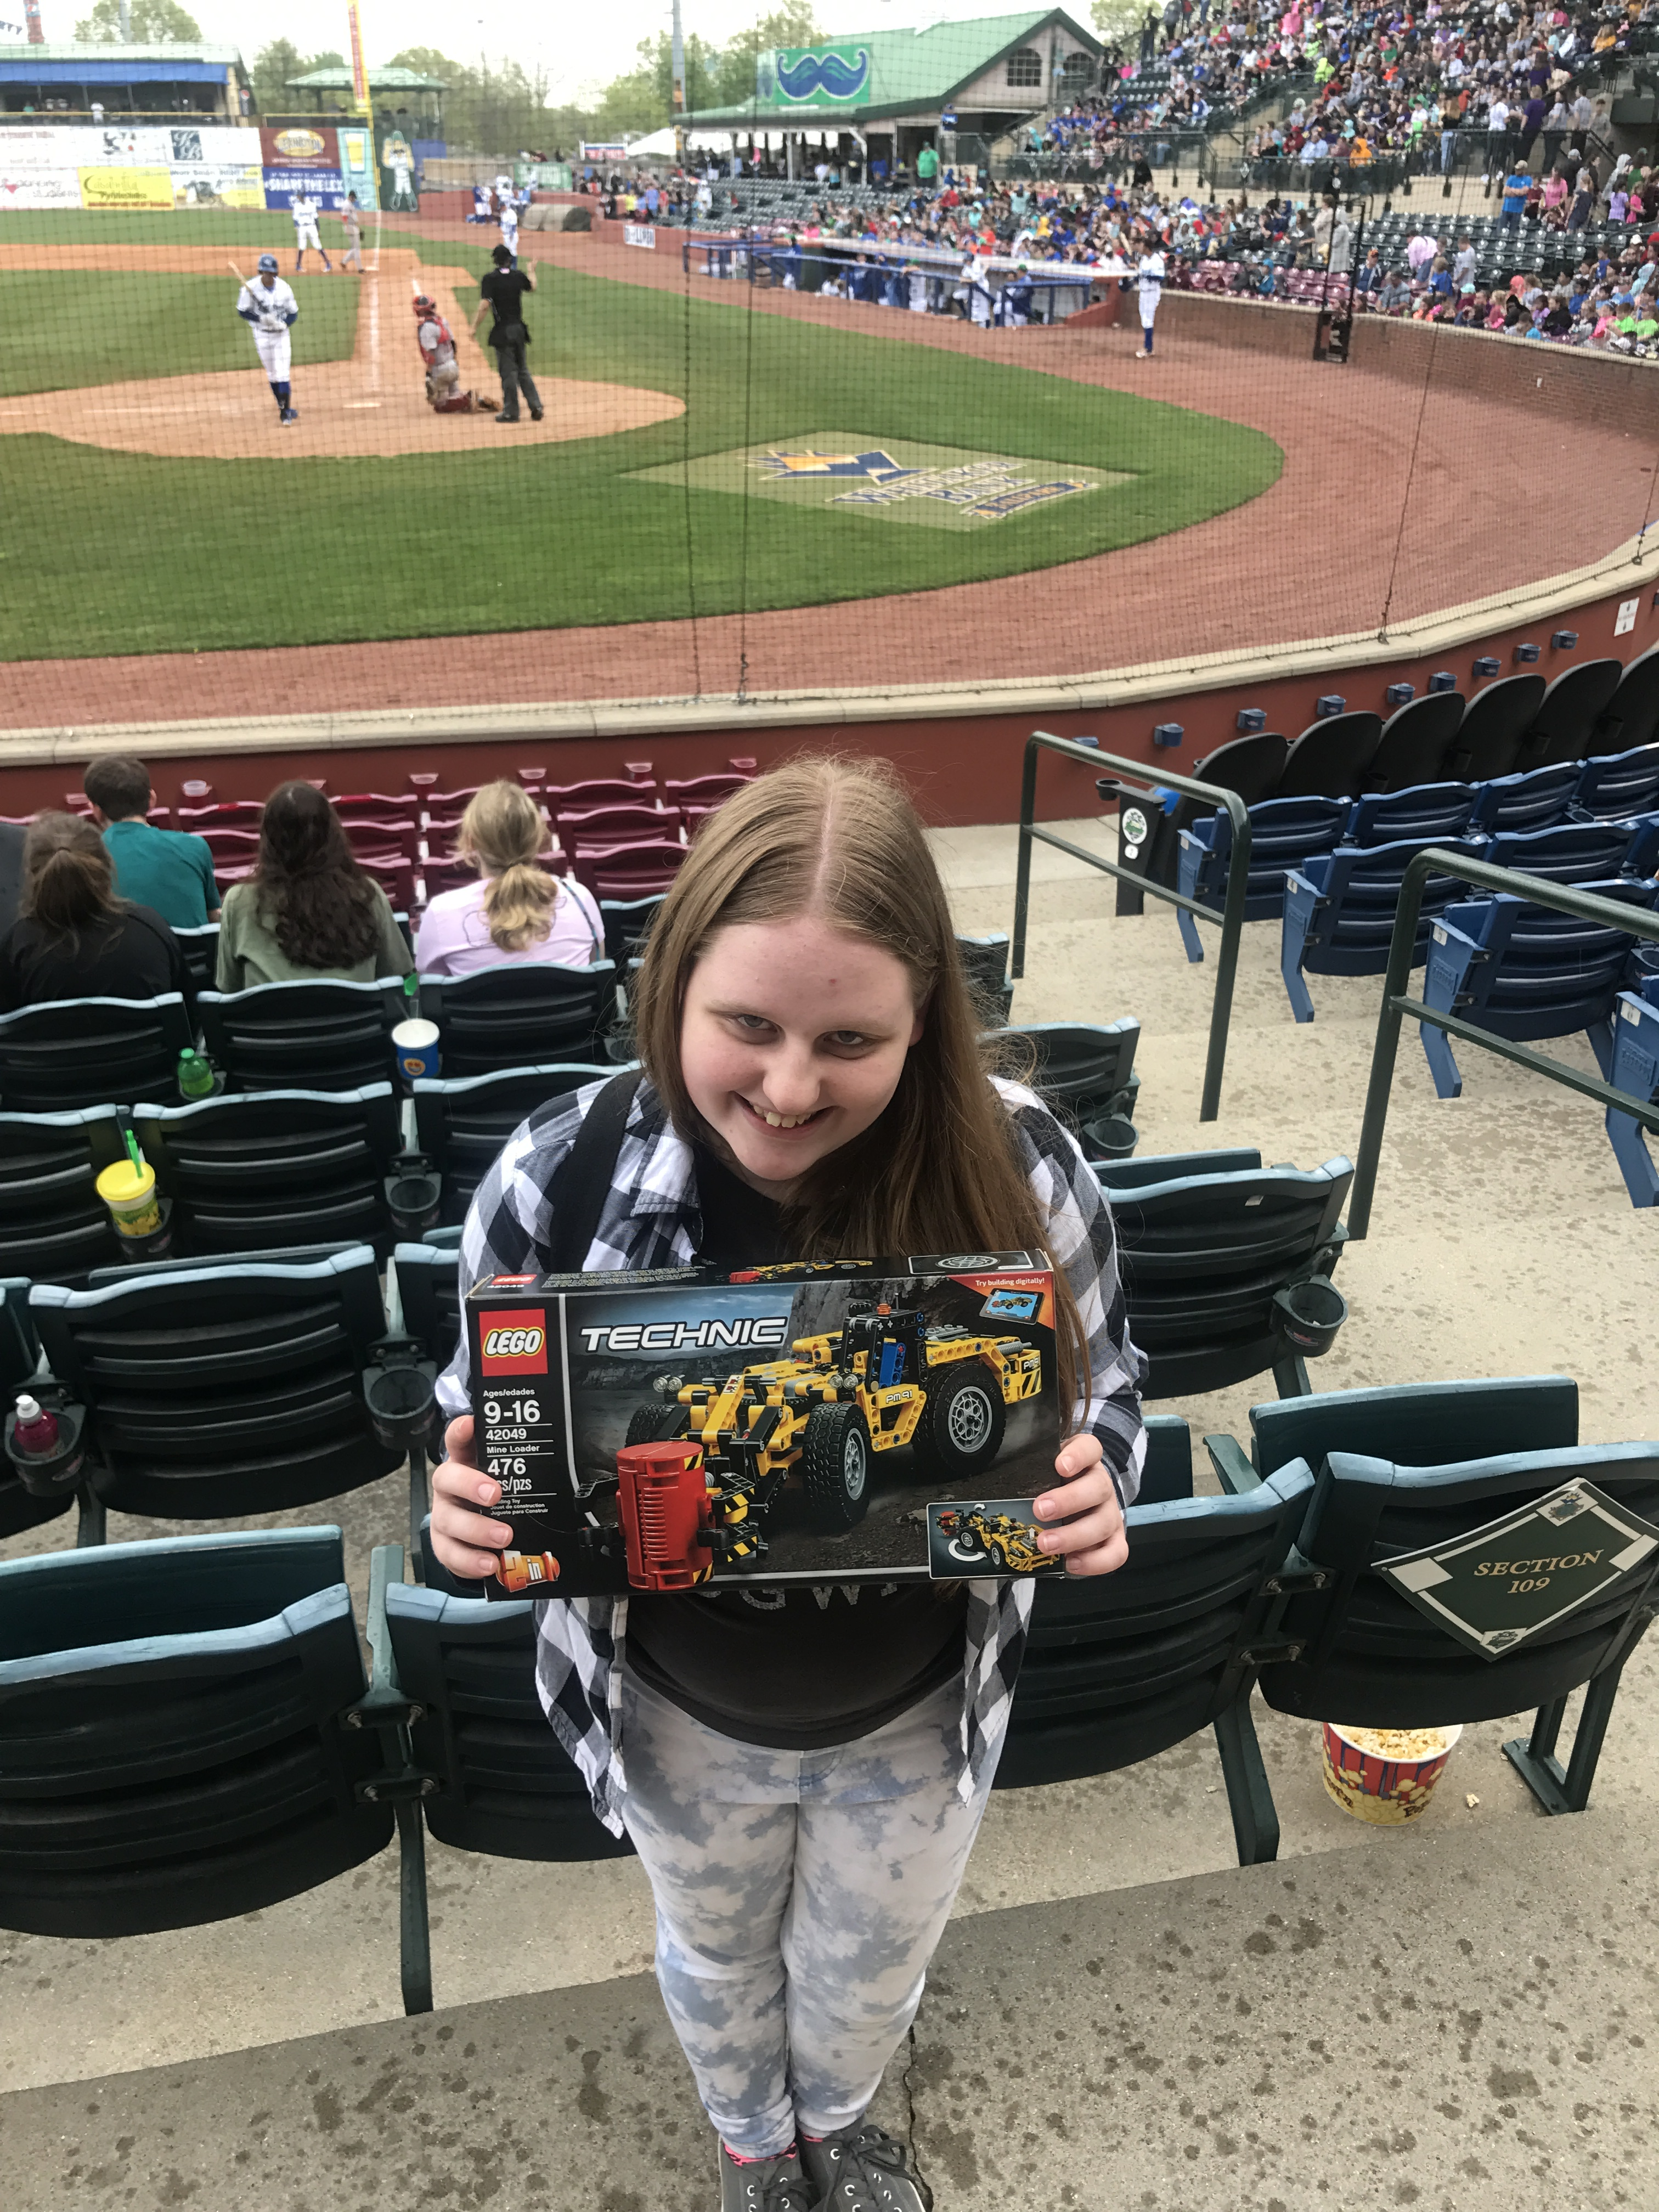 On Wednesday, April 19th, CCHS students had the opportunity to participate in the Lexington Legends Game Day Education Program at Applebee's Park.